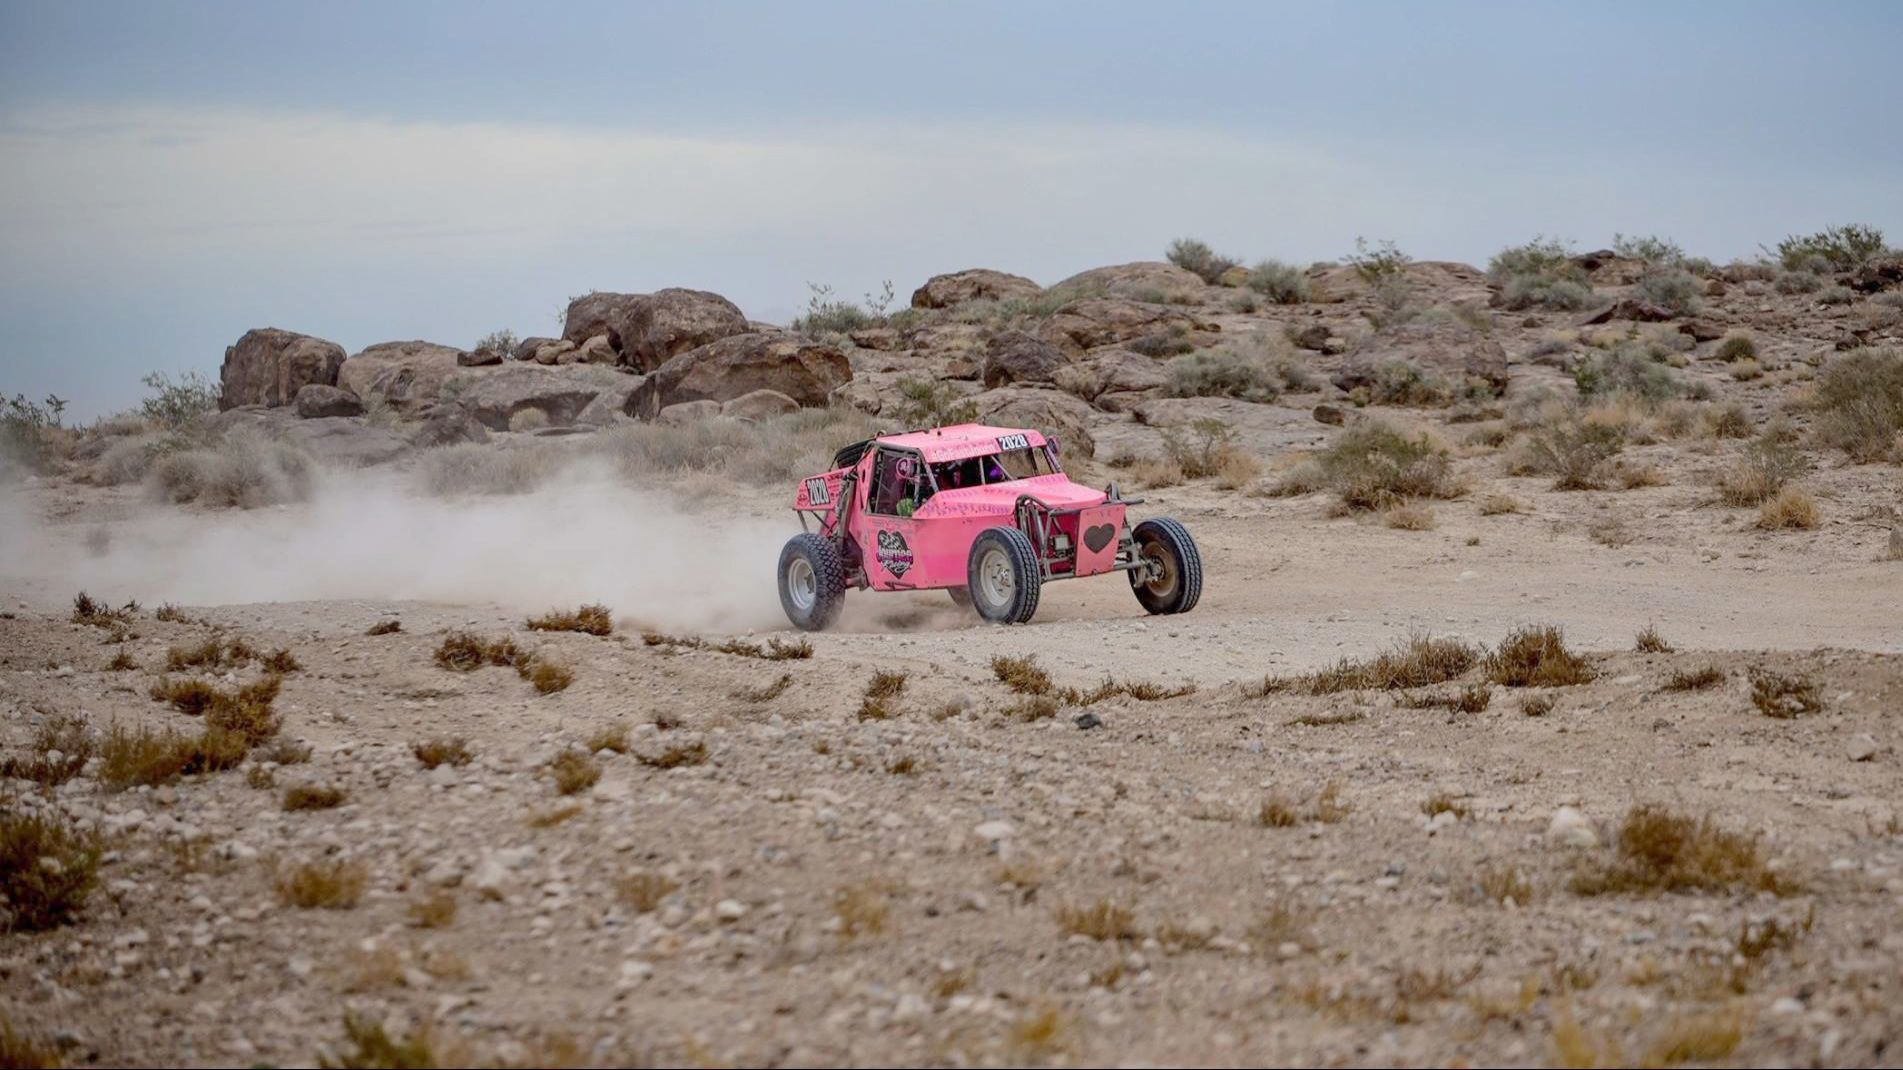 The Journey Racing's pink ½ 1600 buggy races through the desert. The off-road racing team supports breast cancer awareness as well as competes in races.